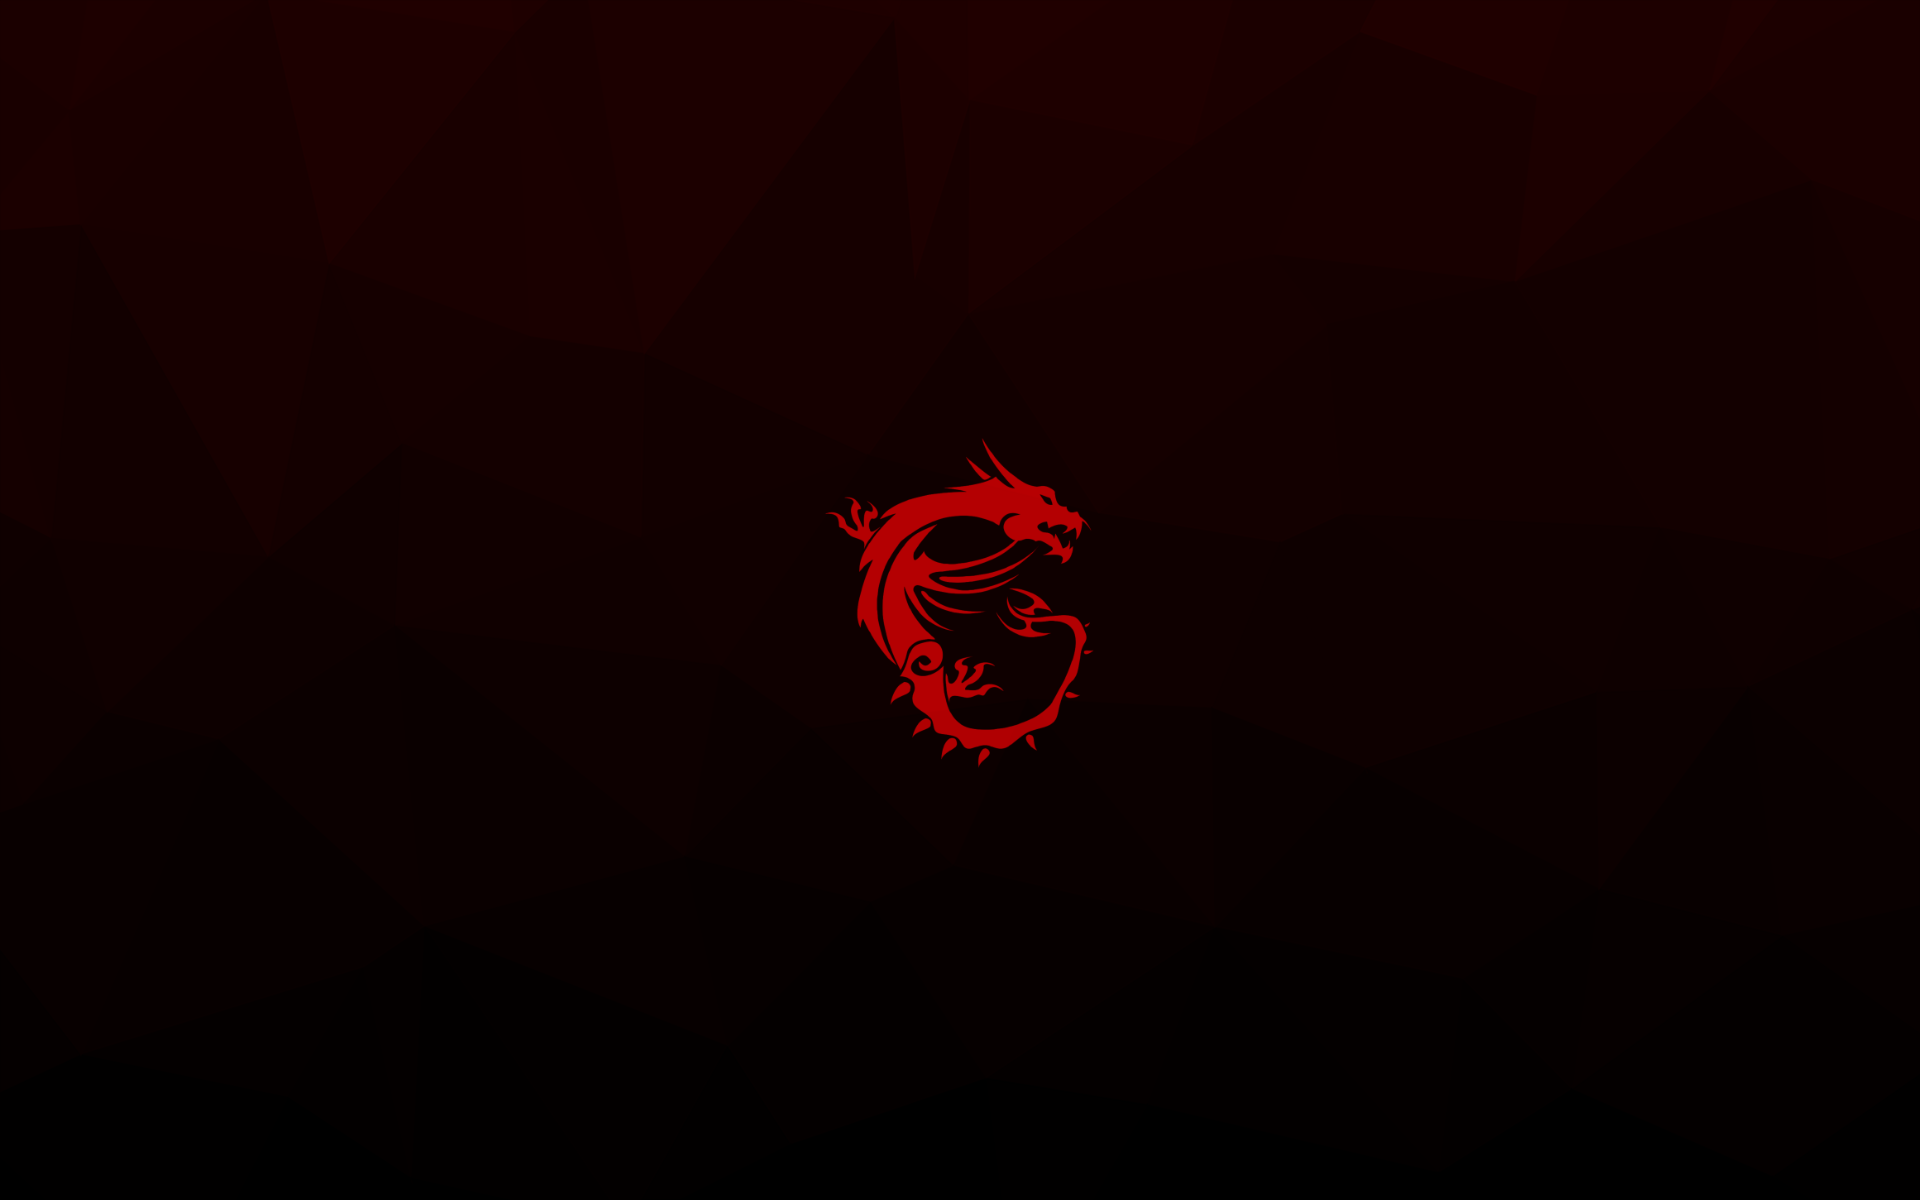 Msi 4k Wallpapers Top Free Msi 4k Backgrounds Wallpaperaccess